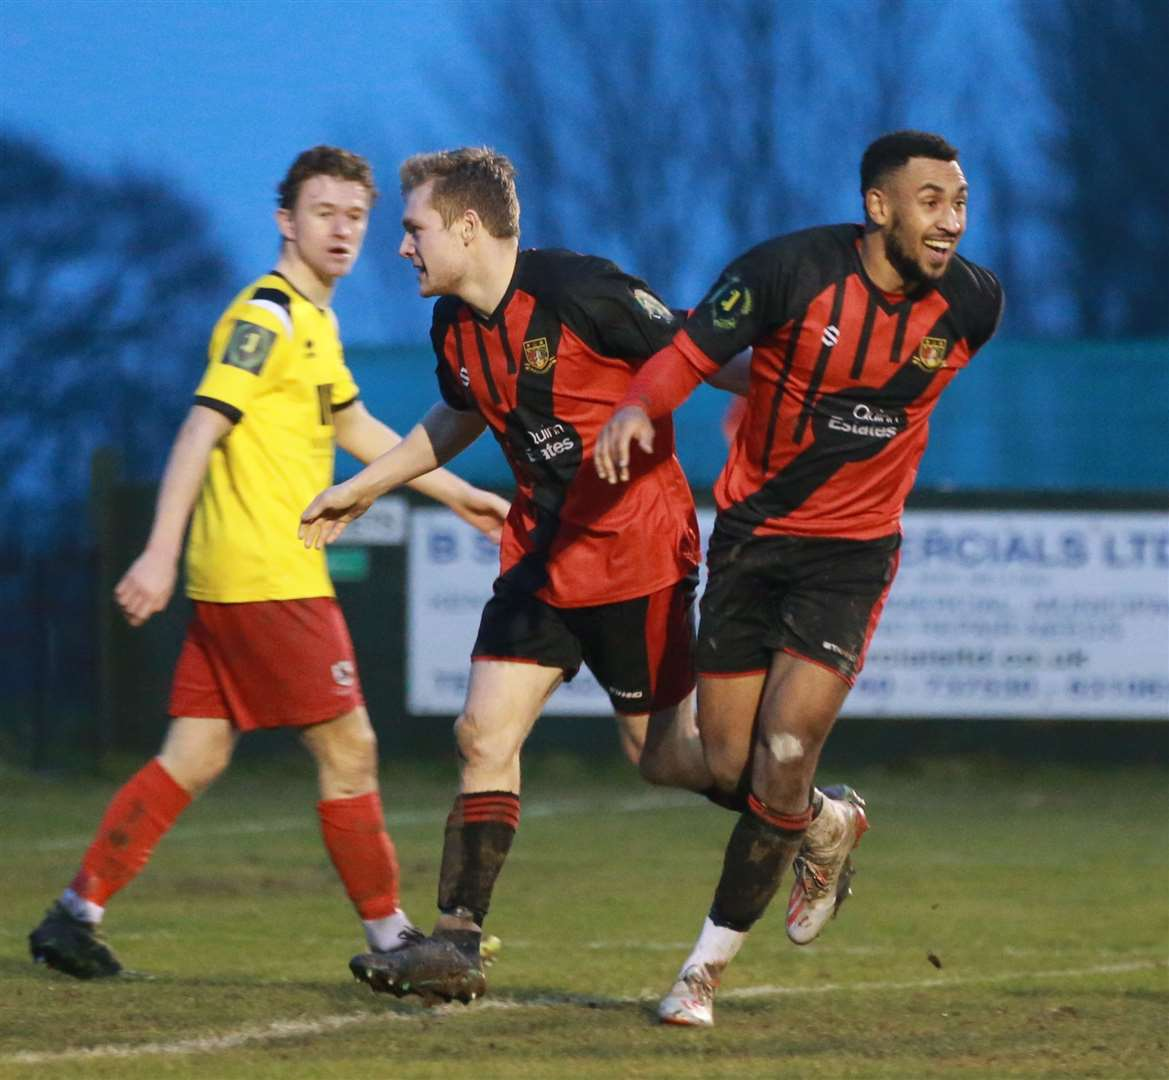 Johan Caney-Bryan celebrates one of his two goals for Sittingbourne against Ramsgate Picture: John Westhrop